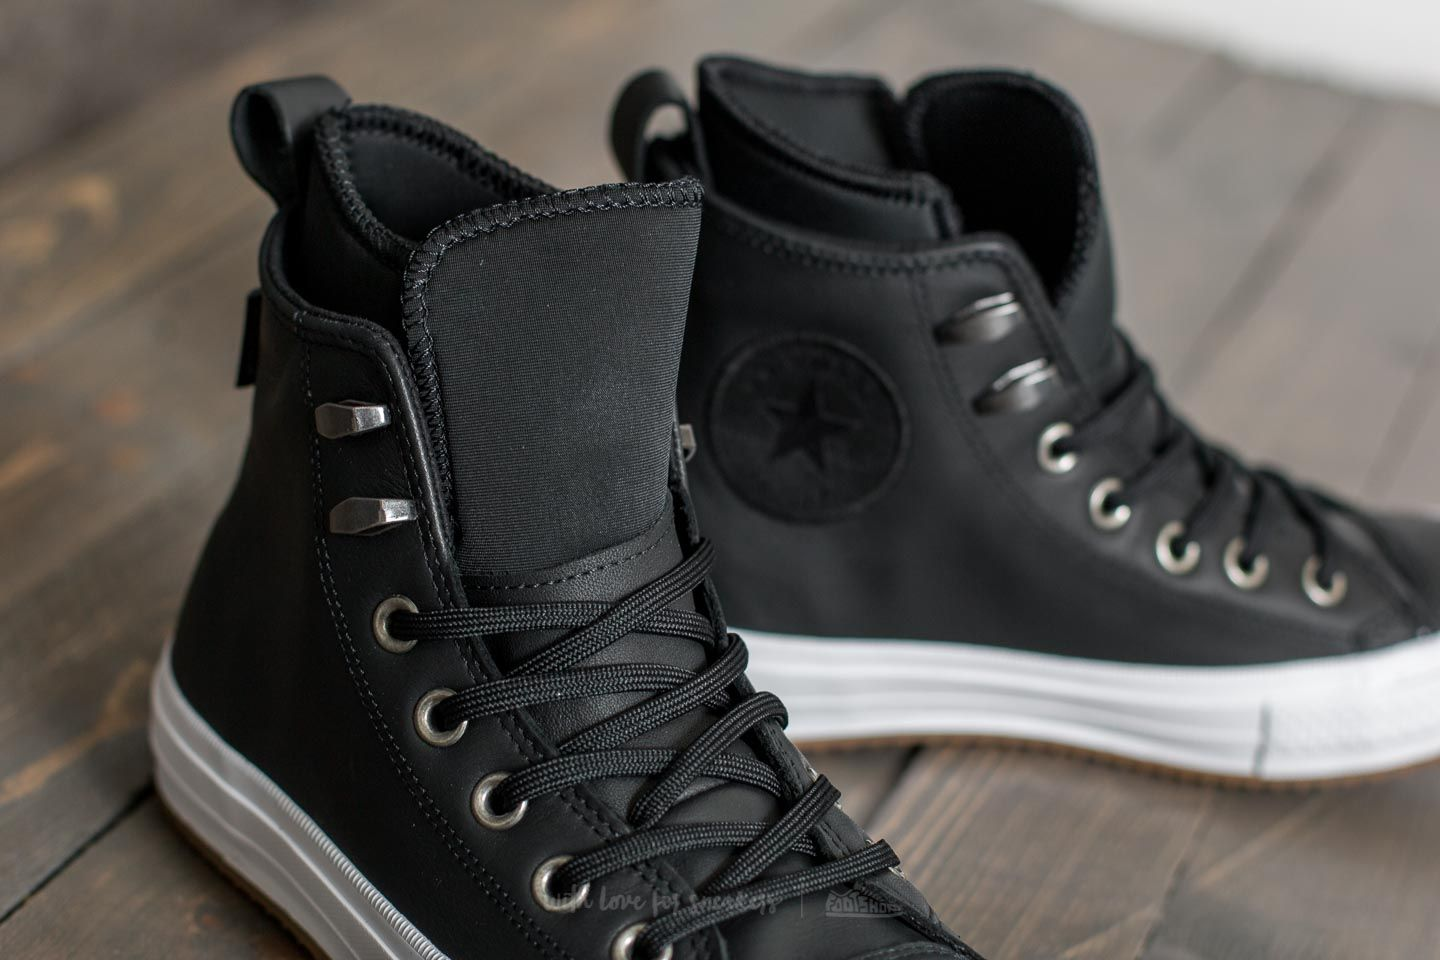 d4d78217340 Converse Chuck Taylor All Star Waterproof Boot Hi Black  Black  White at a  great